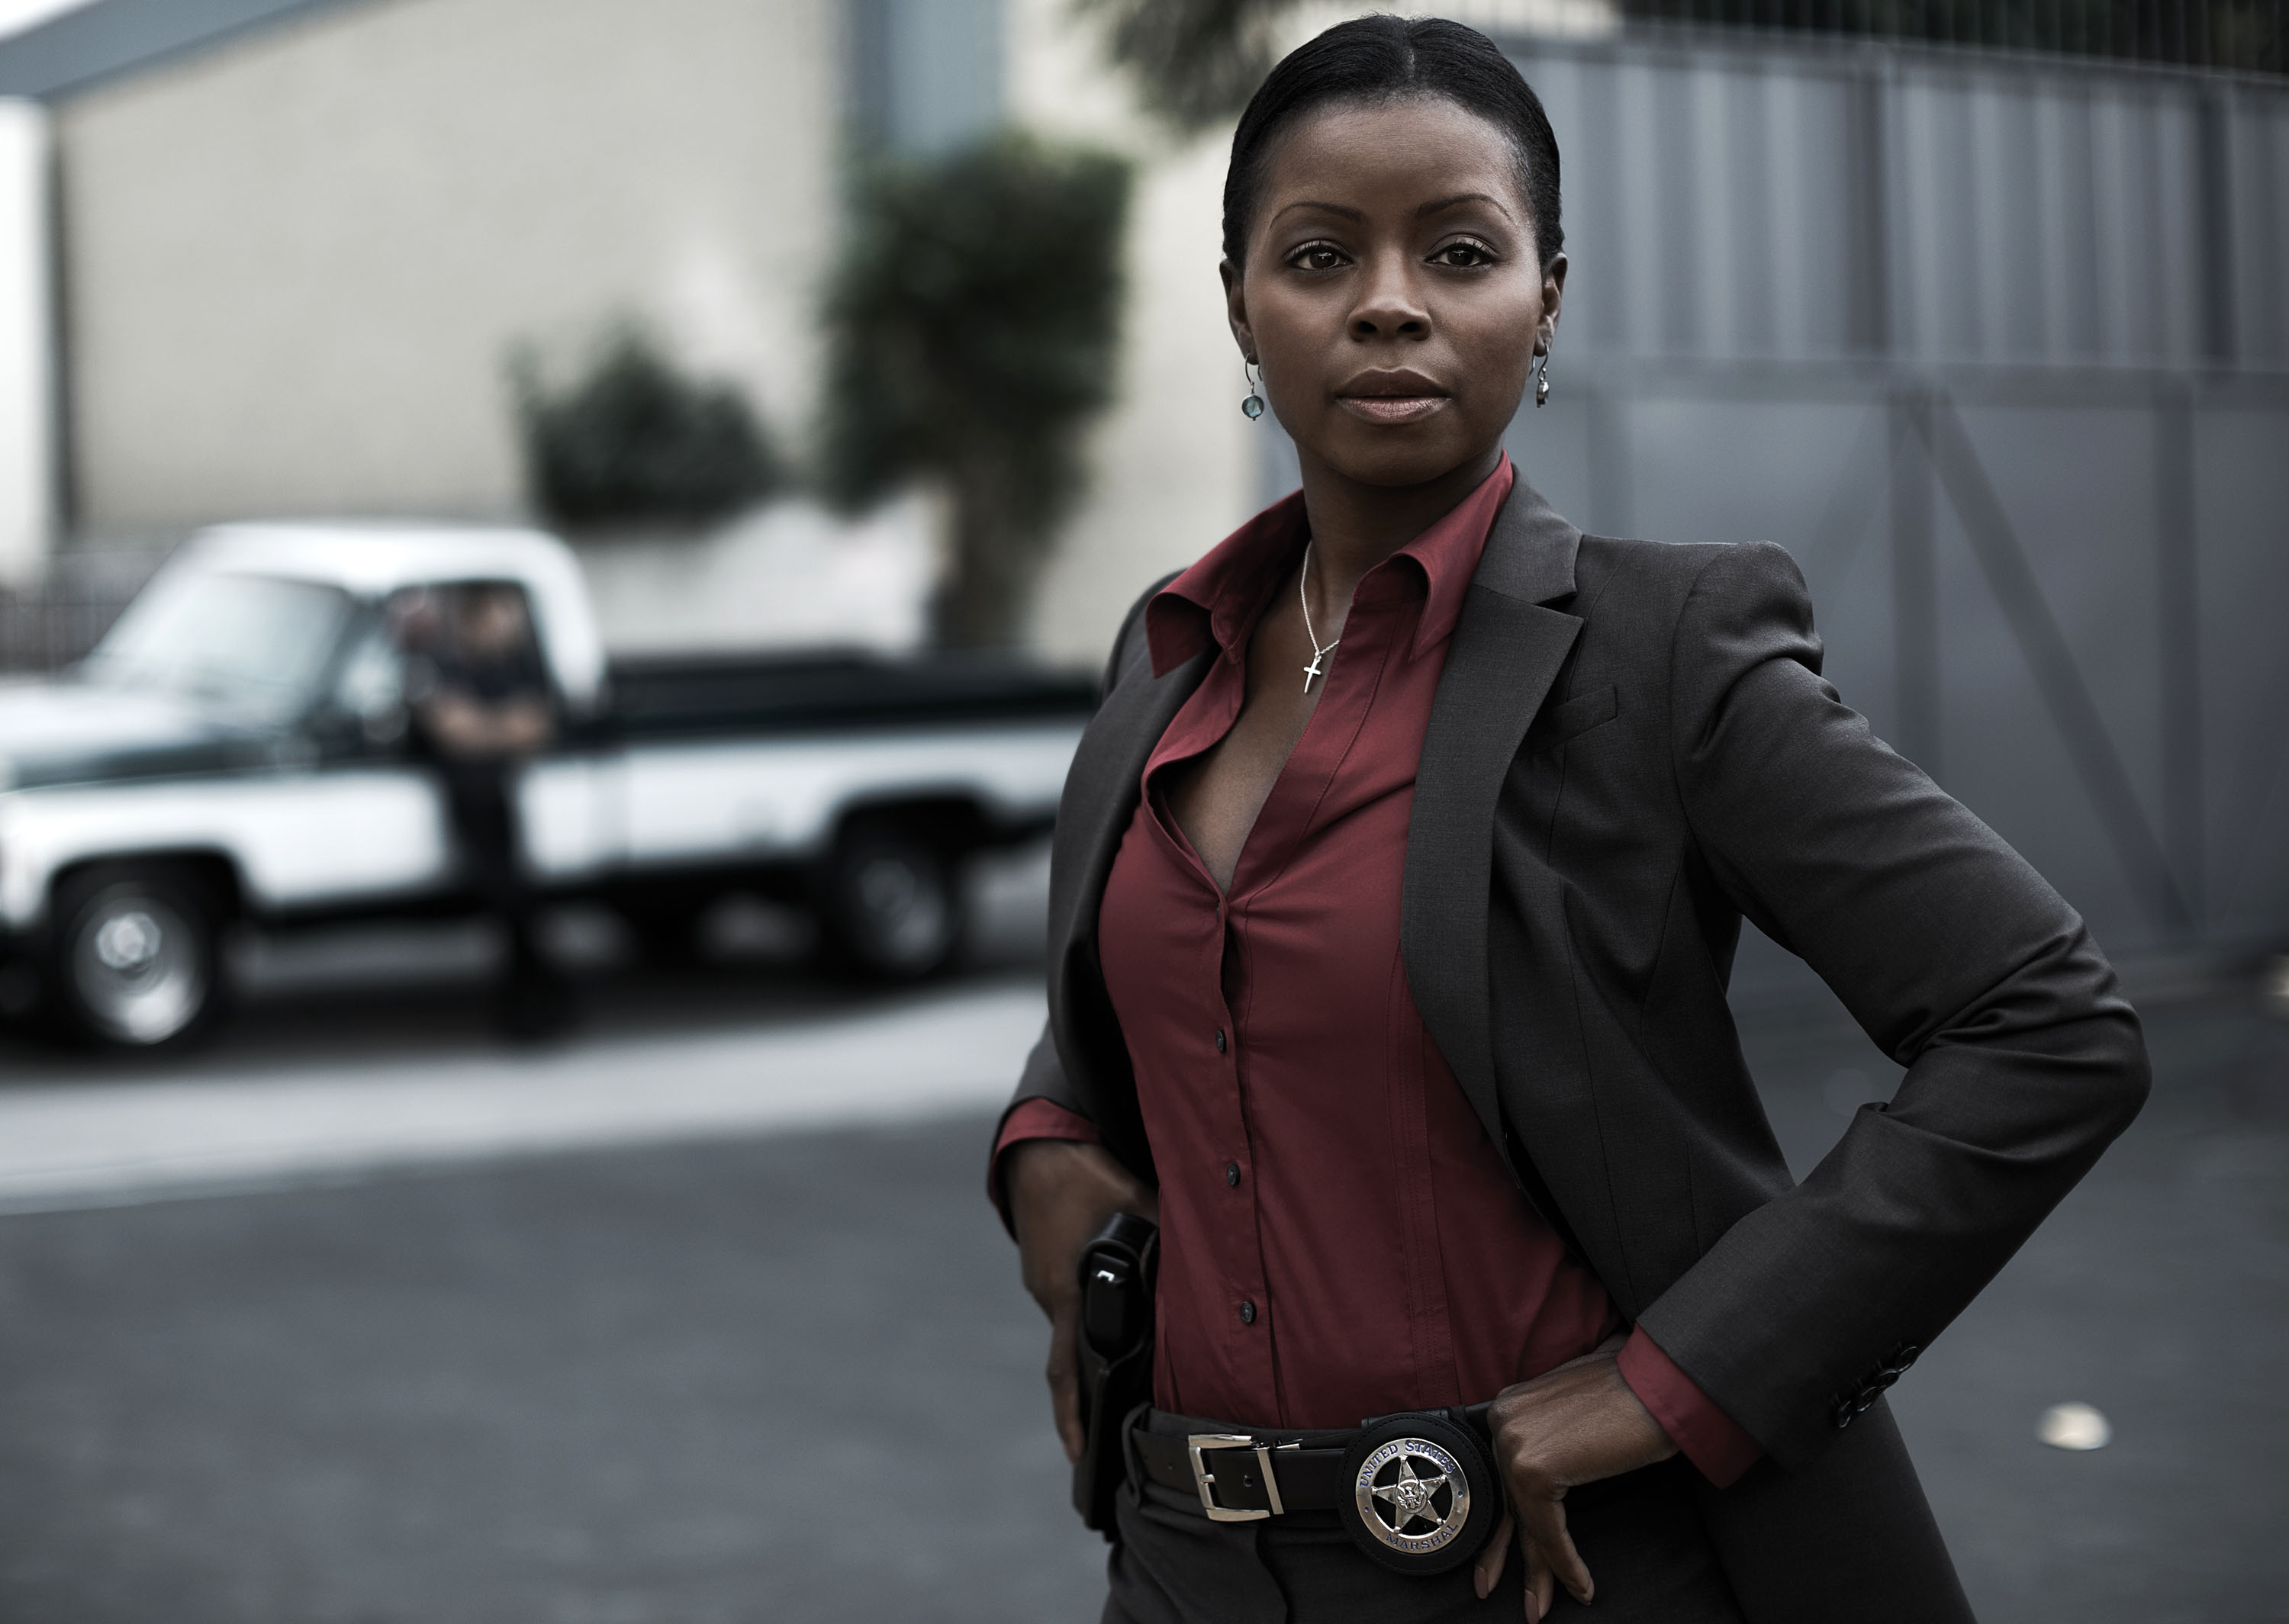 Erica Tazel And Jacob Pitts Talk Justified Season 3 Erica tazel is currently a series regular on the good fight. collider